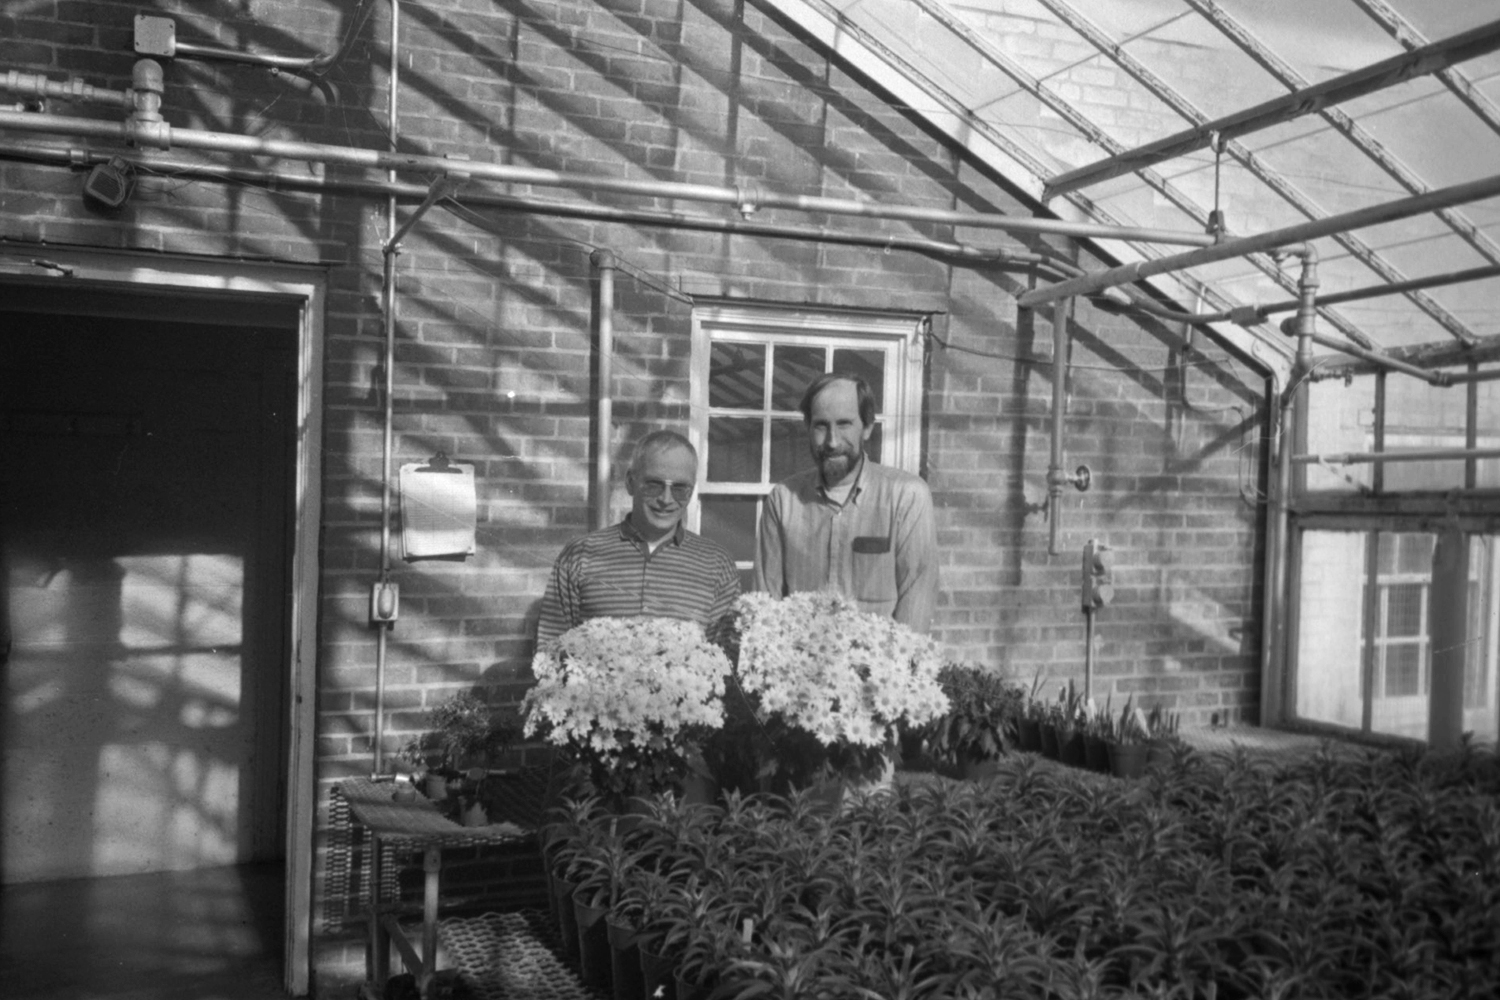 Two men posing with plants in a greenhouse